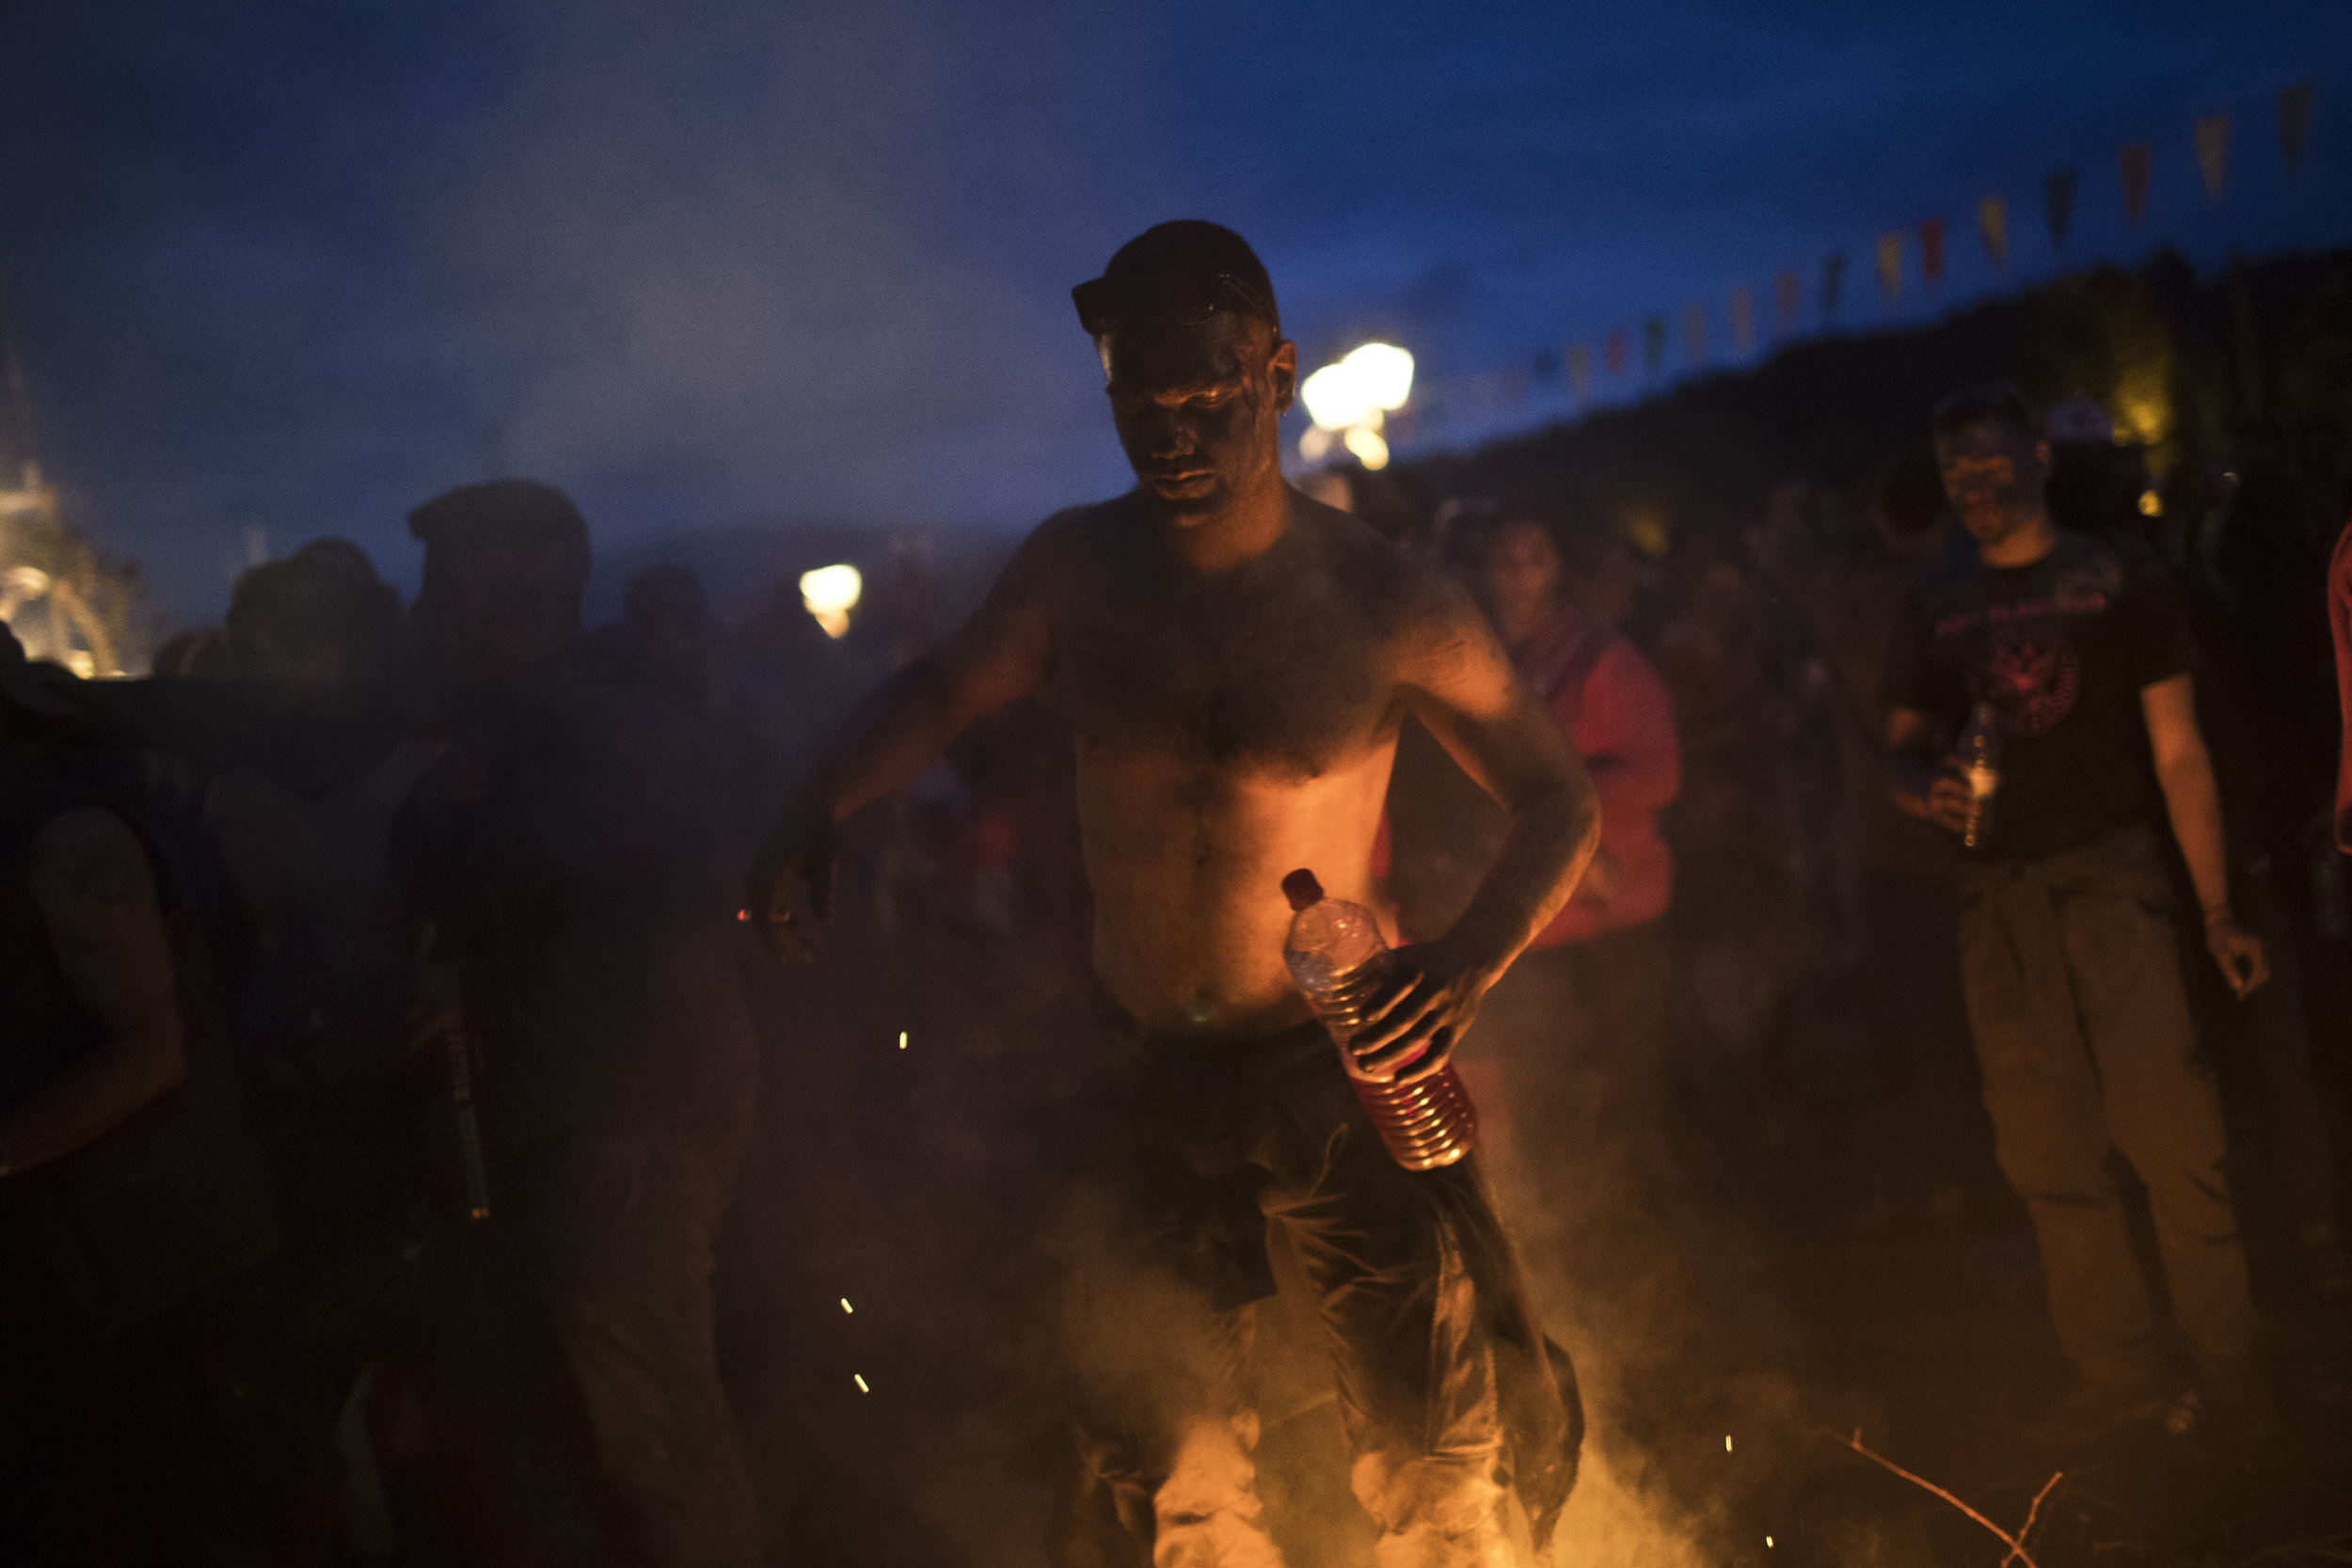 In this Monday, Feb. 19, 2018 photo, a reveler with a bottle of wine dances near a fire during the flour war, a unique colorful flour fight marking the end of the carnival season in the port town of Galaxidi, some 200 kilometers (120 miles) west of Athens.  (AP Photo/Petros Giannakouris)